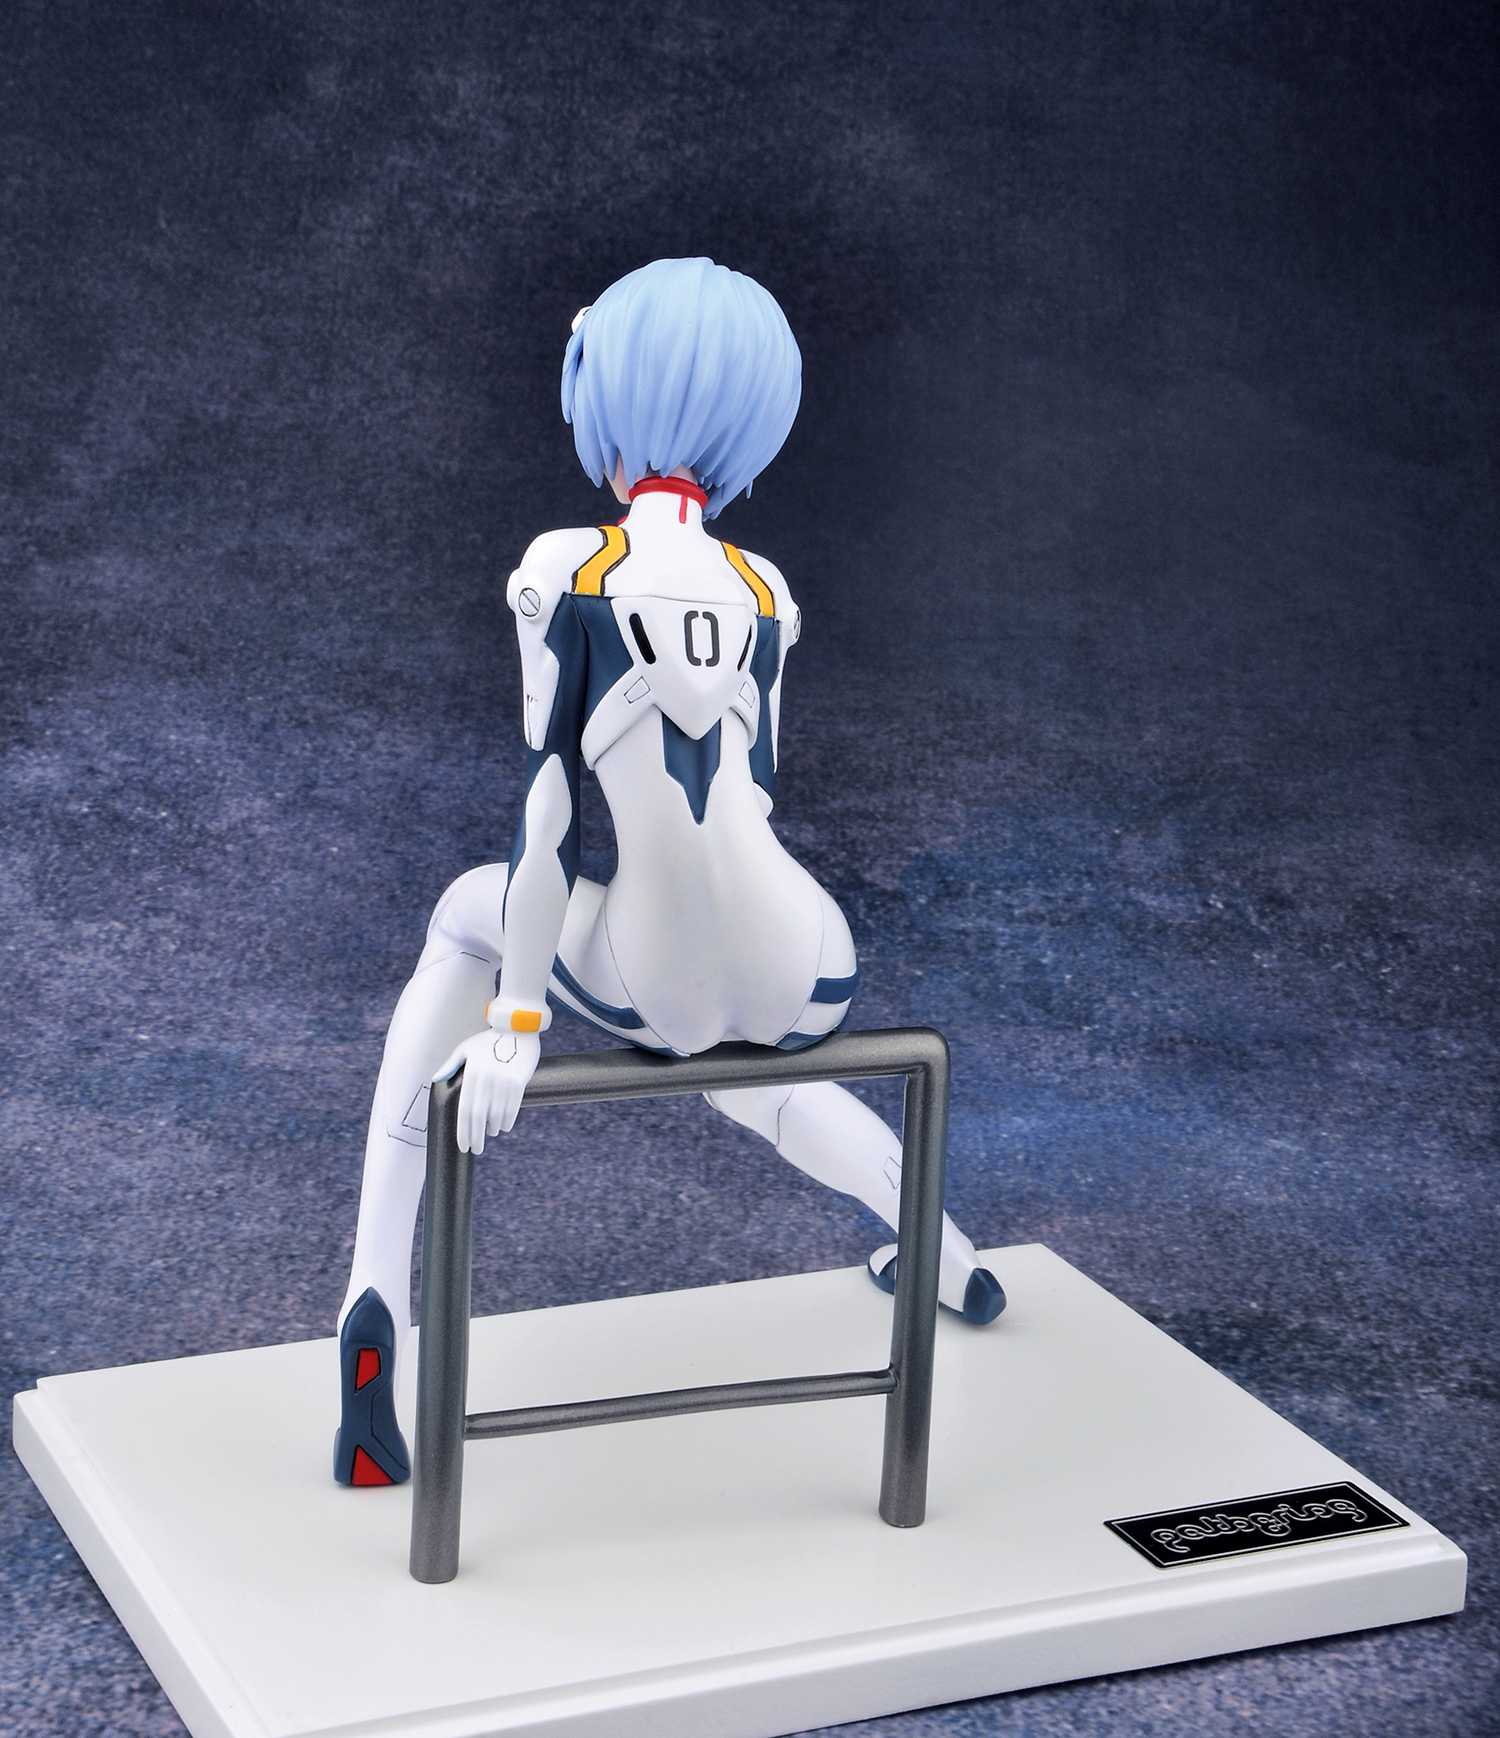 The Blue-Haired EVA Pilot Receives a New Figure haruhichan.com Neon Genesis Evangelion Ayanami Rei anime 01